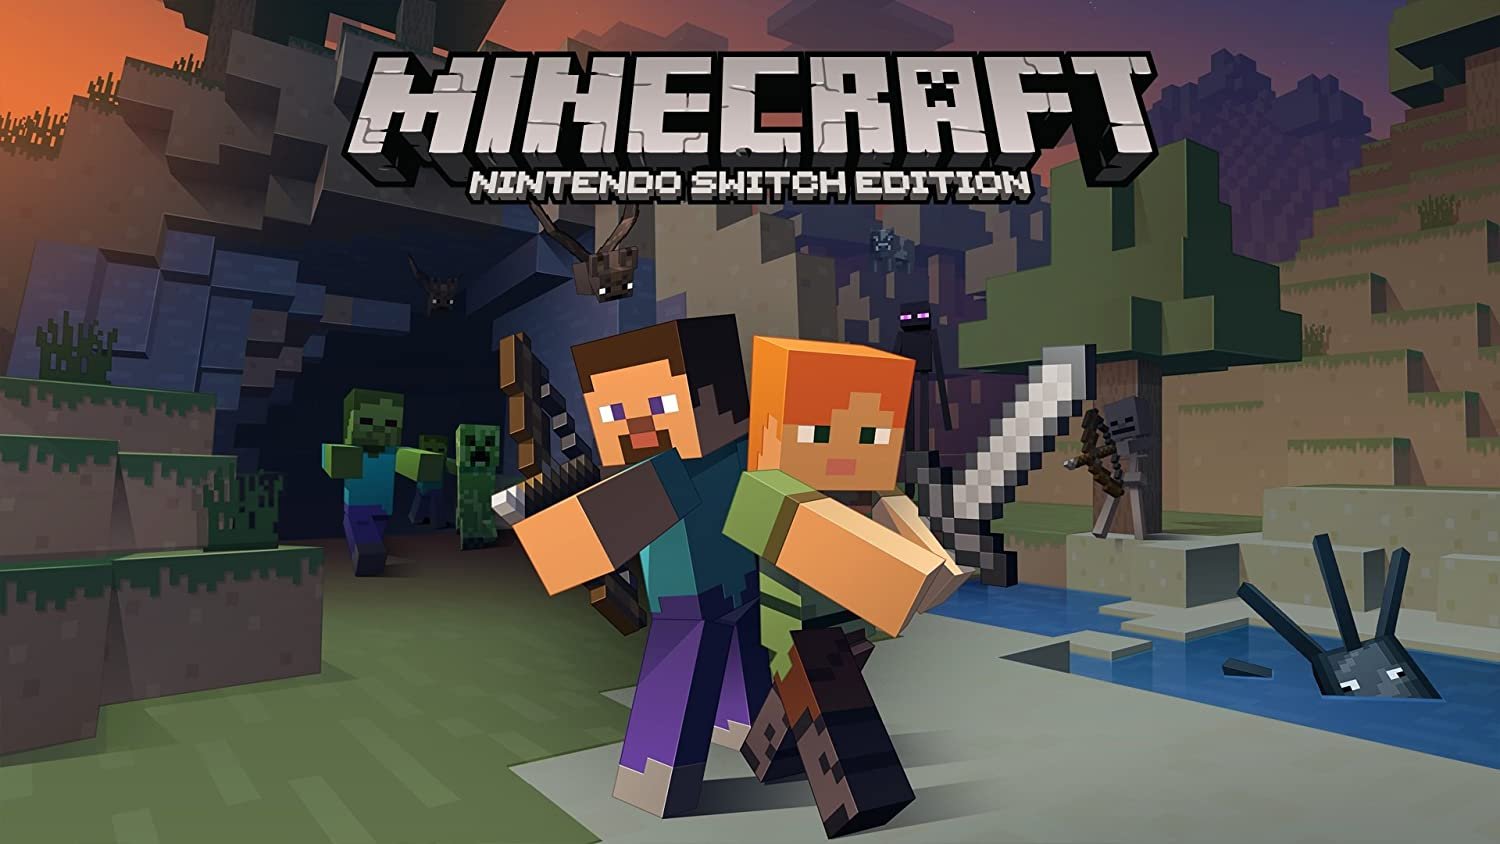 Amazoncom Minecraft Nintendo Switch Edition Nintendo Switch - Minecraft spielen download chip